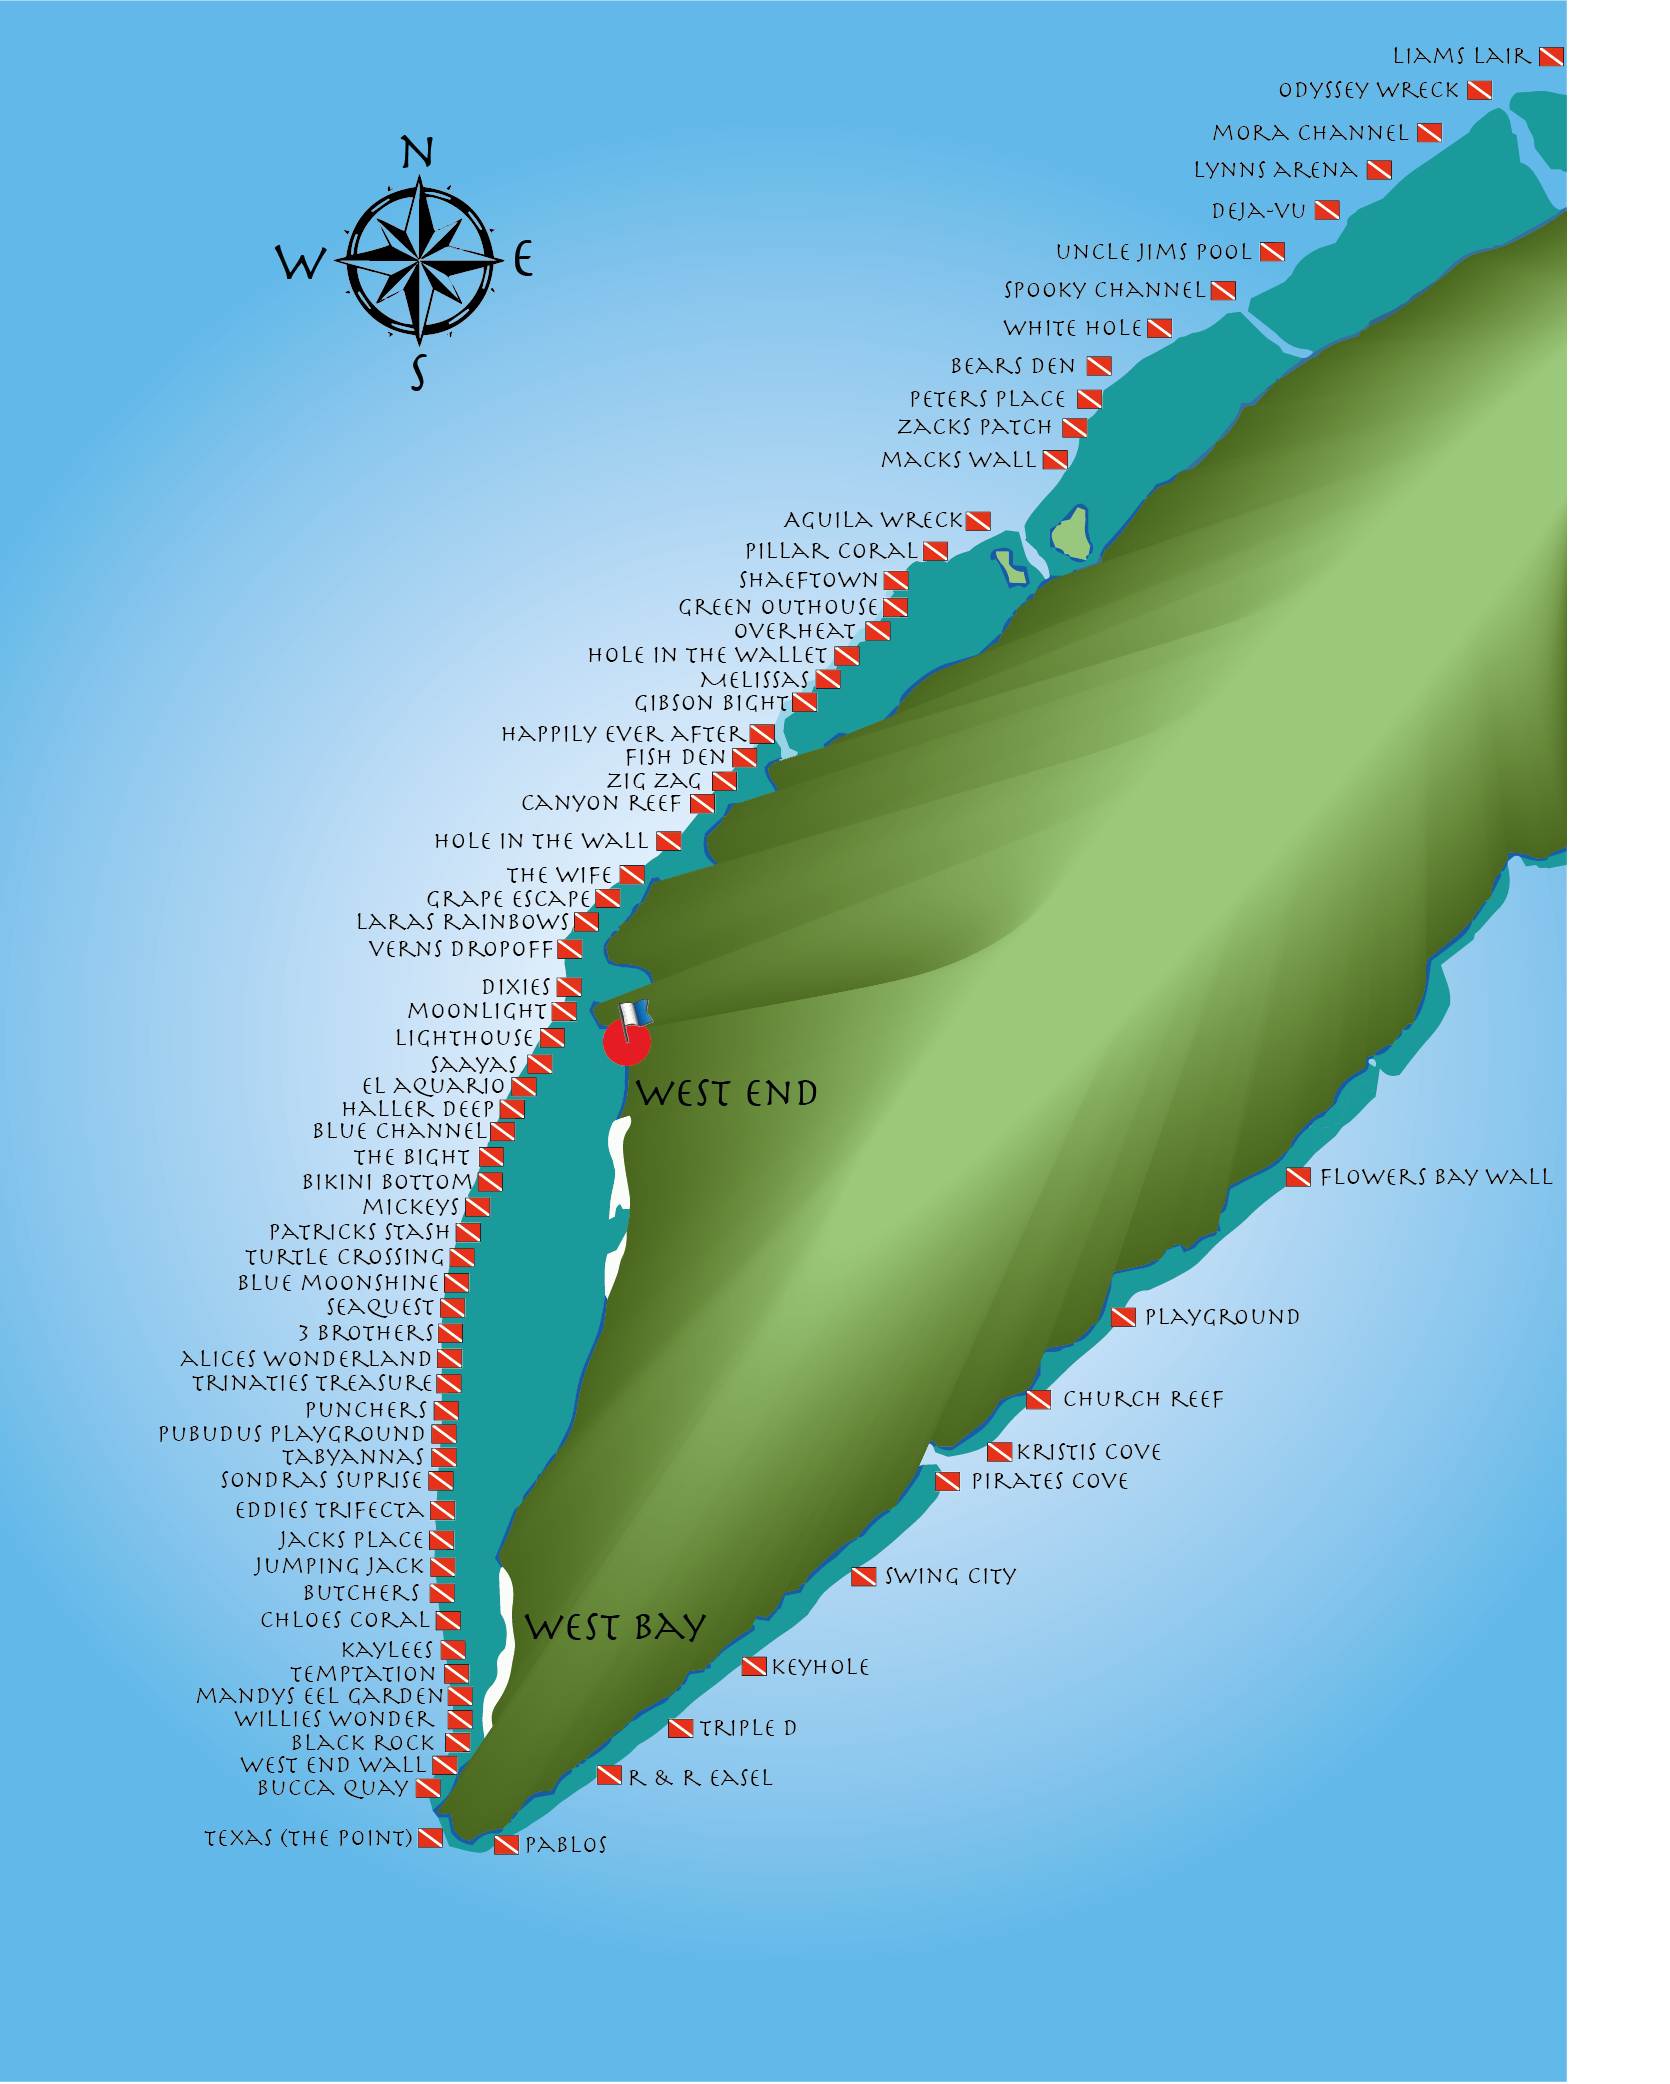 These are just a few of the dive sites that cover the West End of Roatan - if we tried to include them all, we'd need a much bigger map!